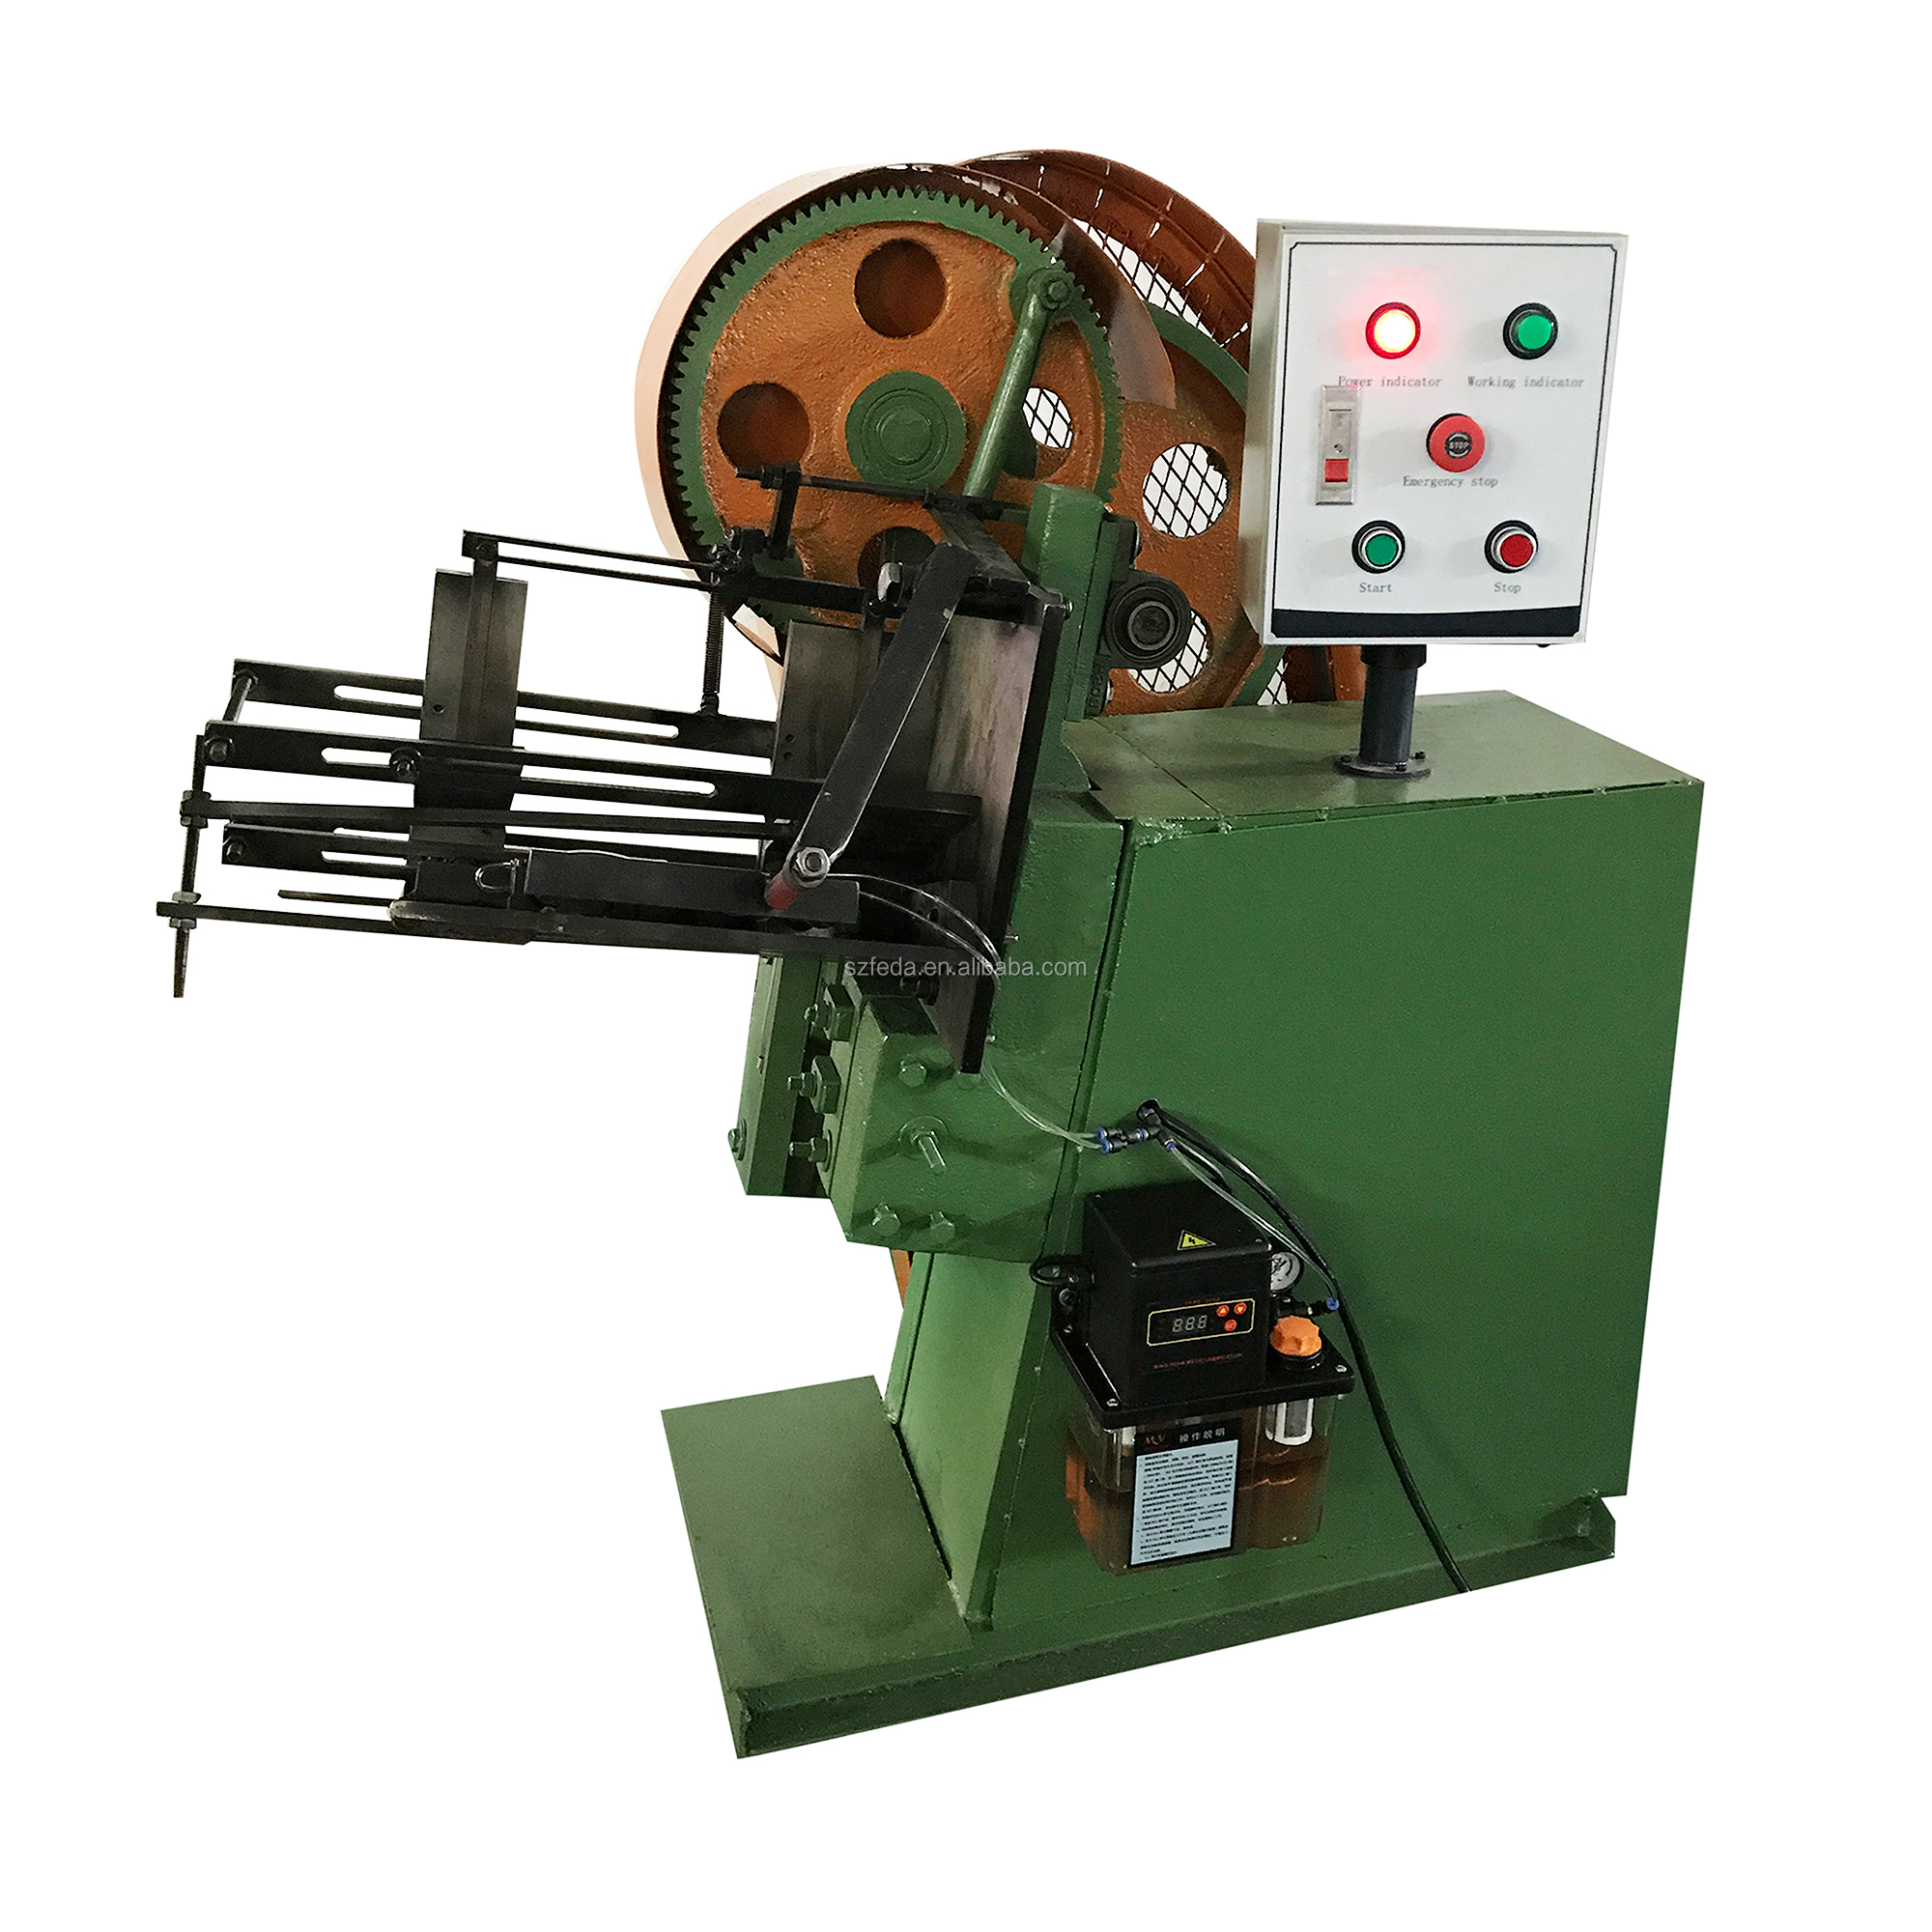 Flat dies screw making machine high speed thread rolling machine vertical type thread making machine